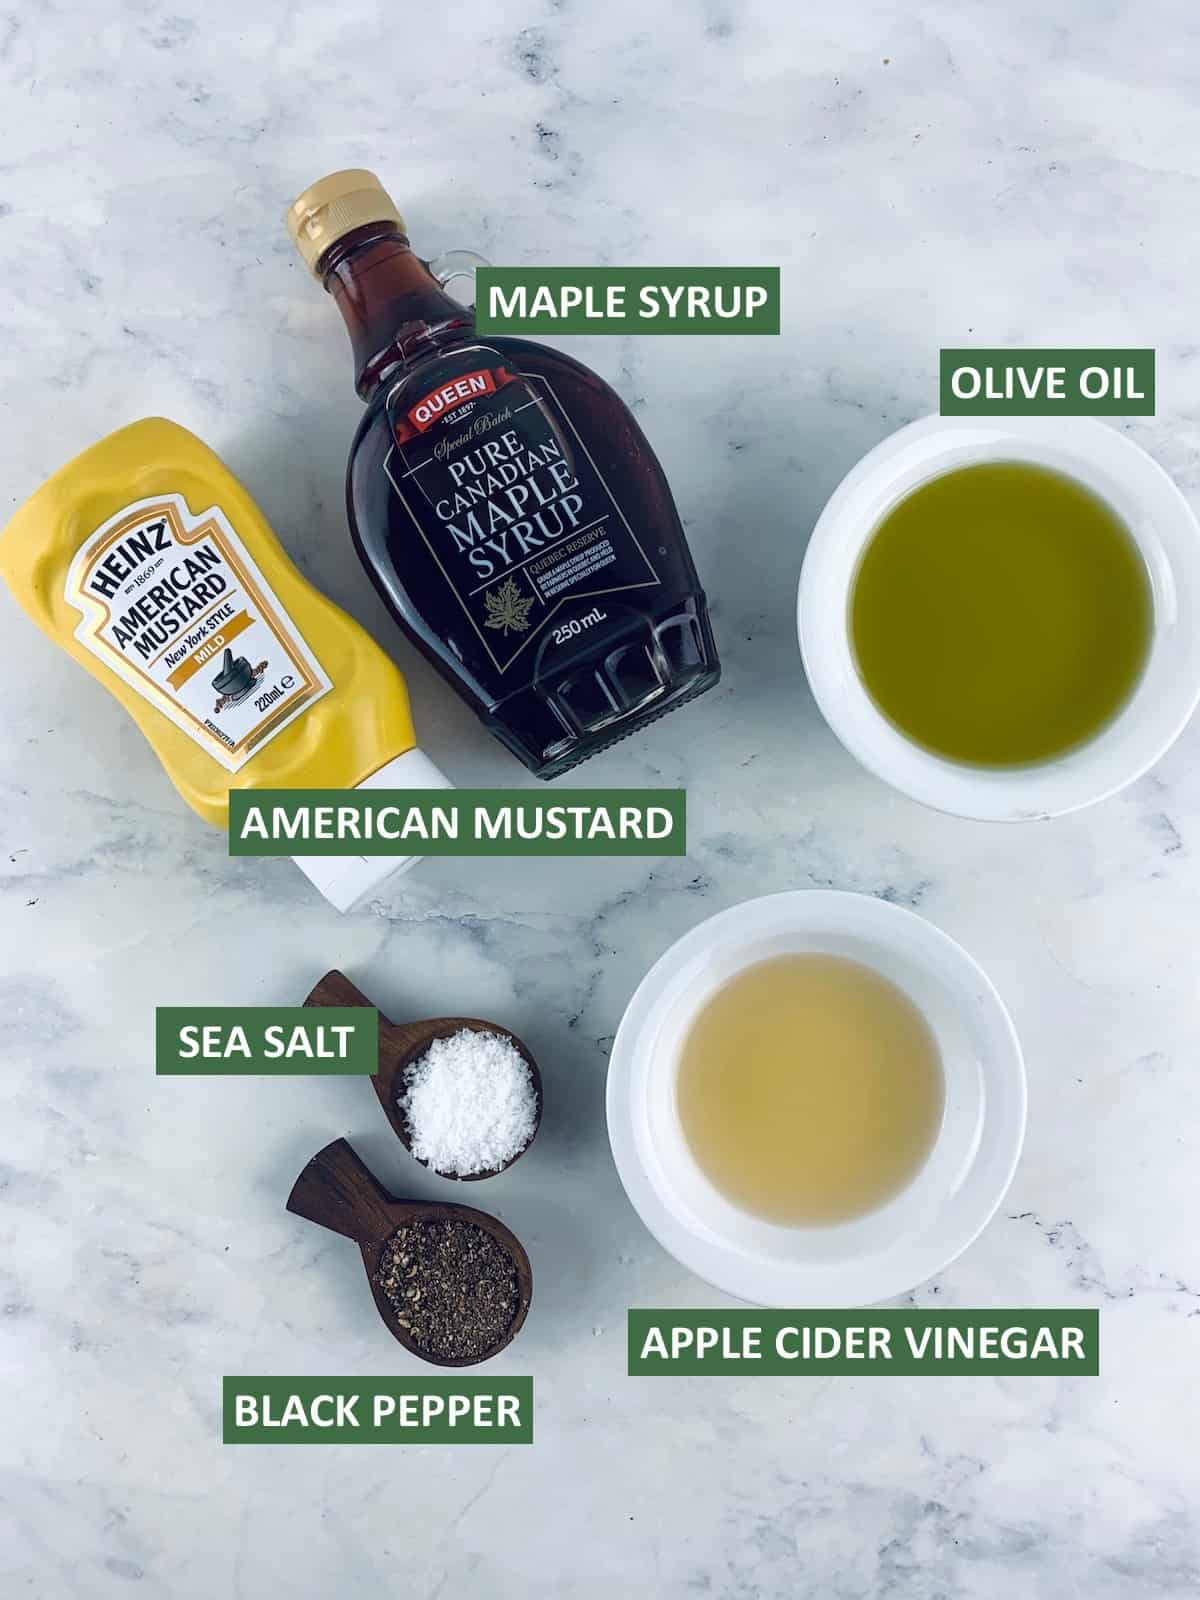 LABELLED INGREDIENTS NEEDED TO MAKE AMERICAN MUSTARD DRESSING